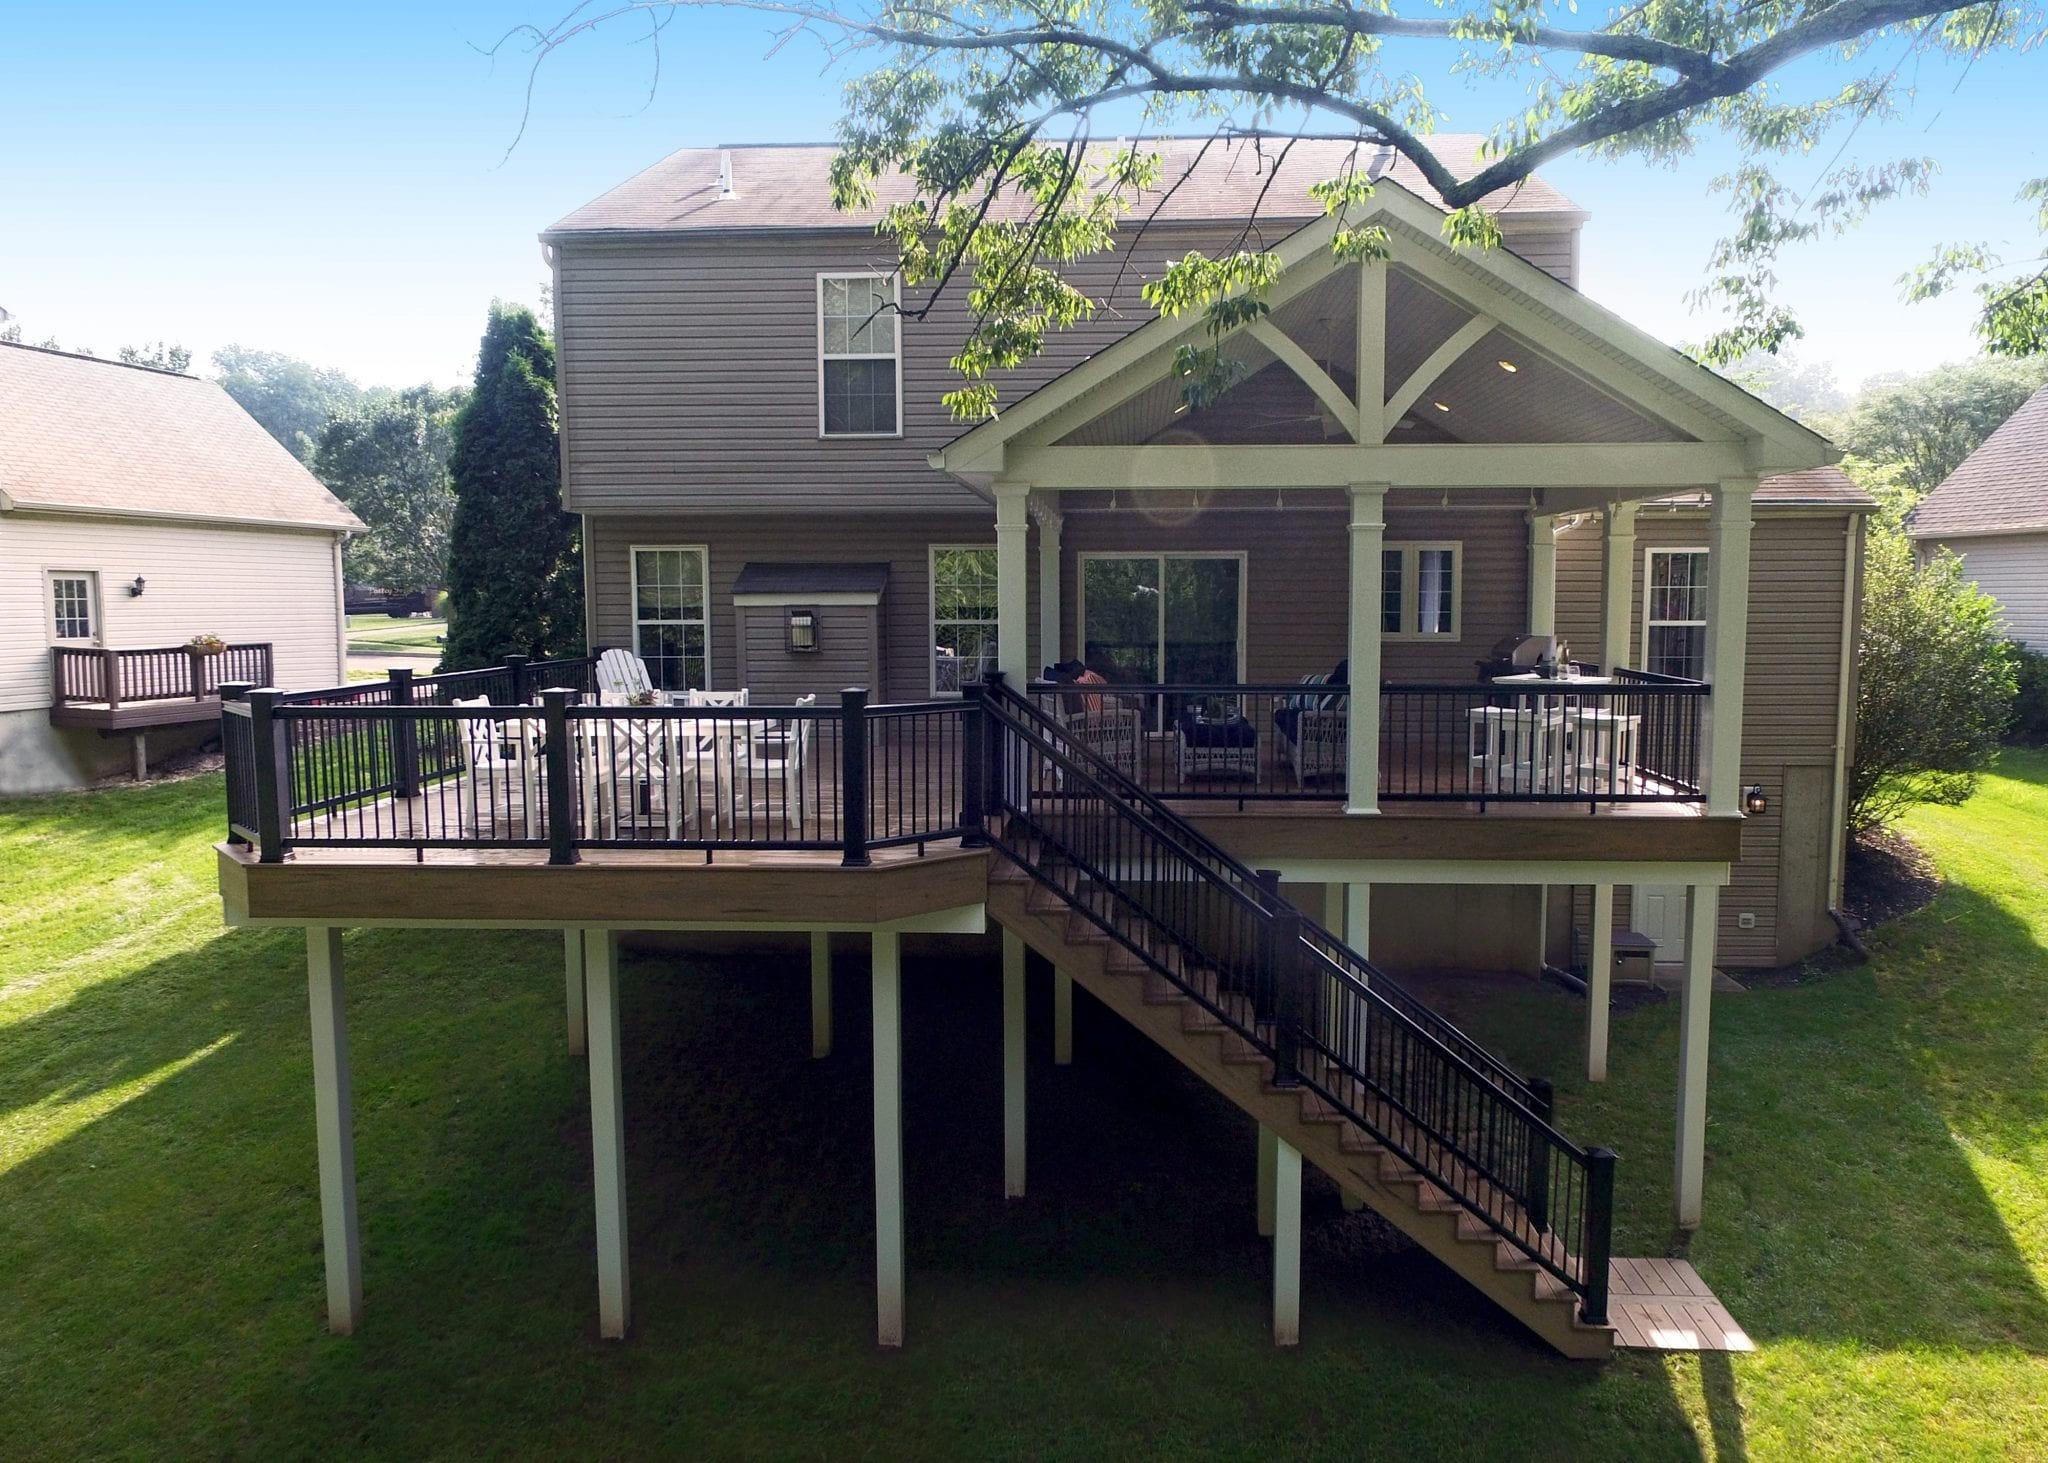 Elevated Deck Designs | Safety Features for Above Ground Decks on Deck Over Patio Ideas id=61644